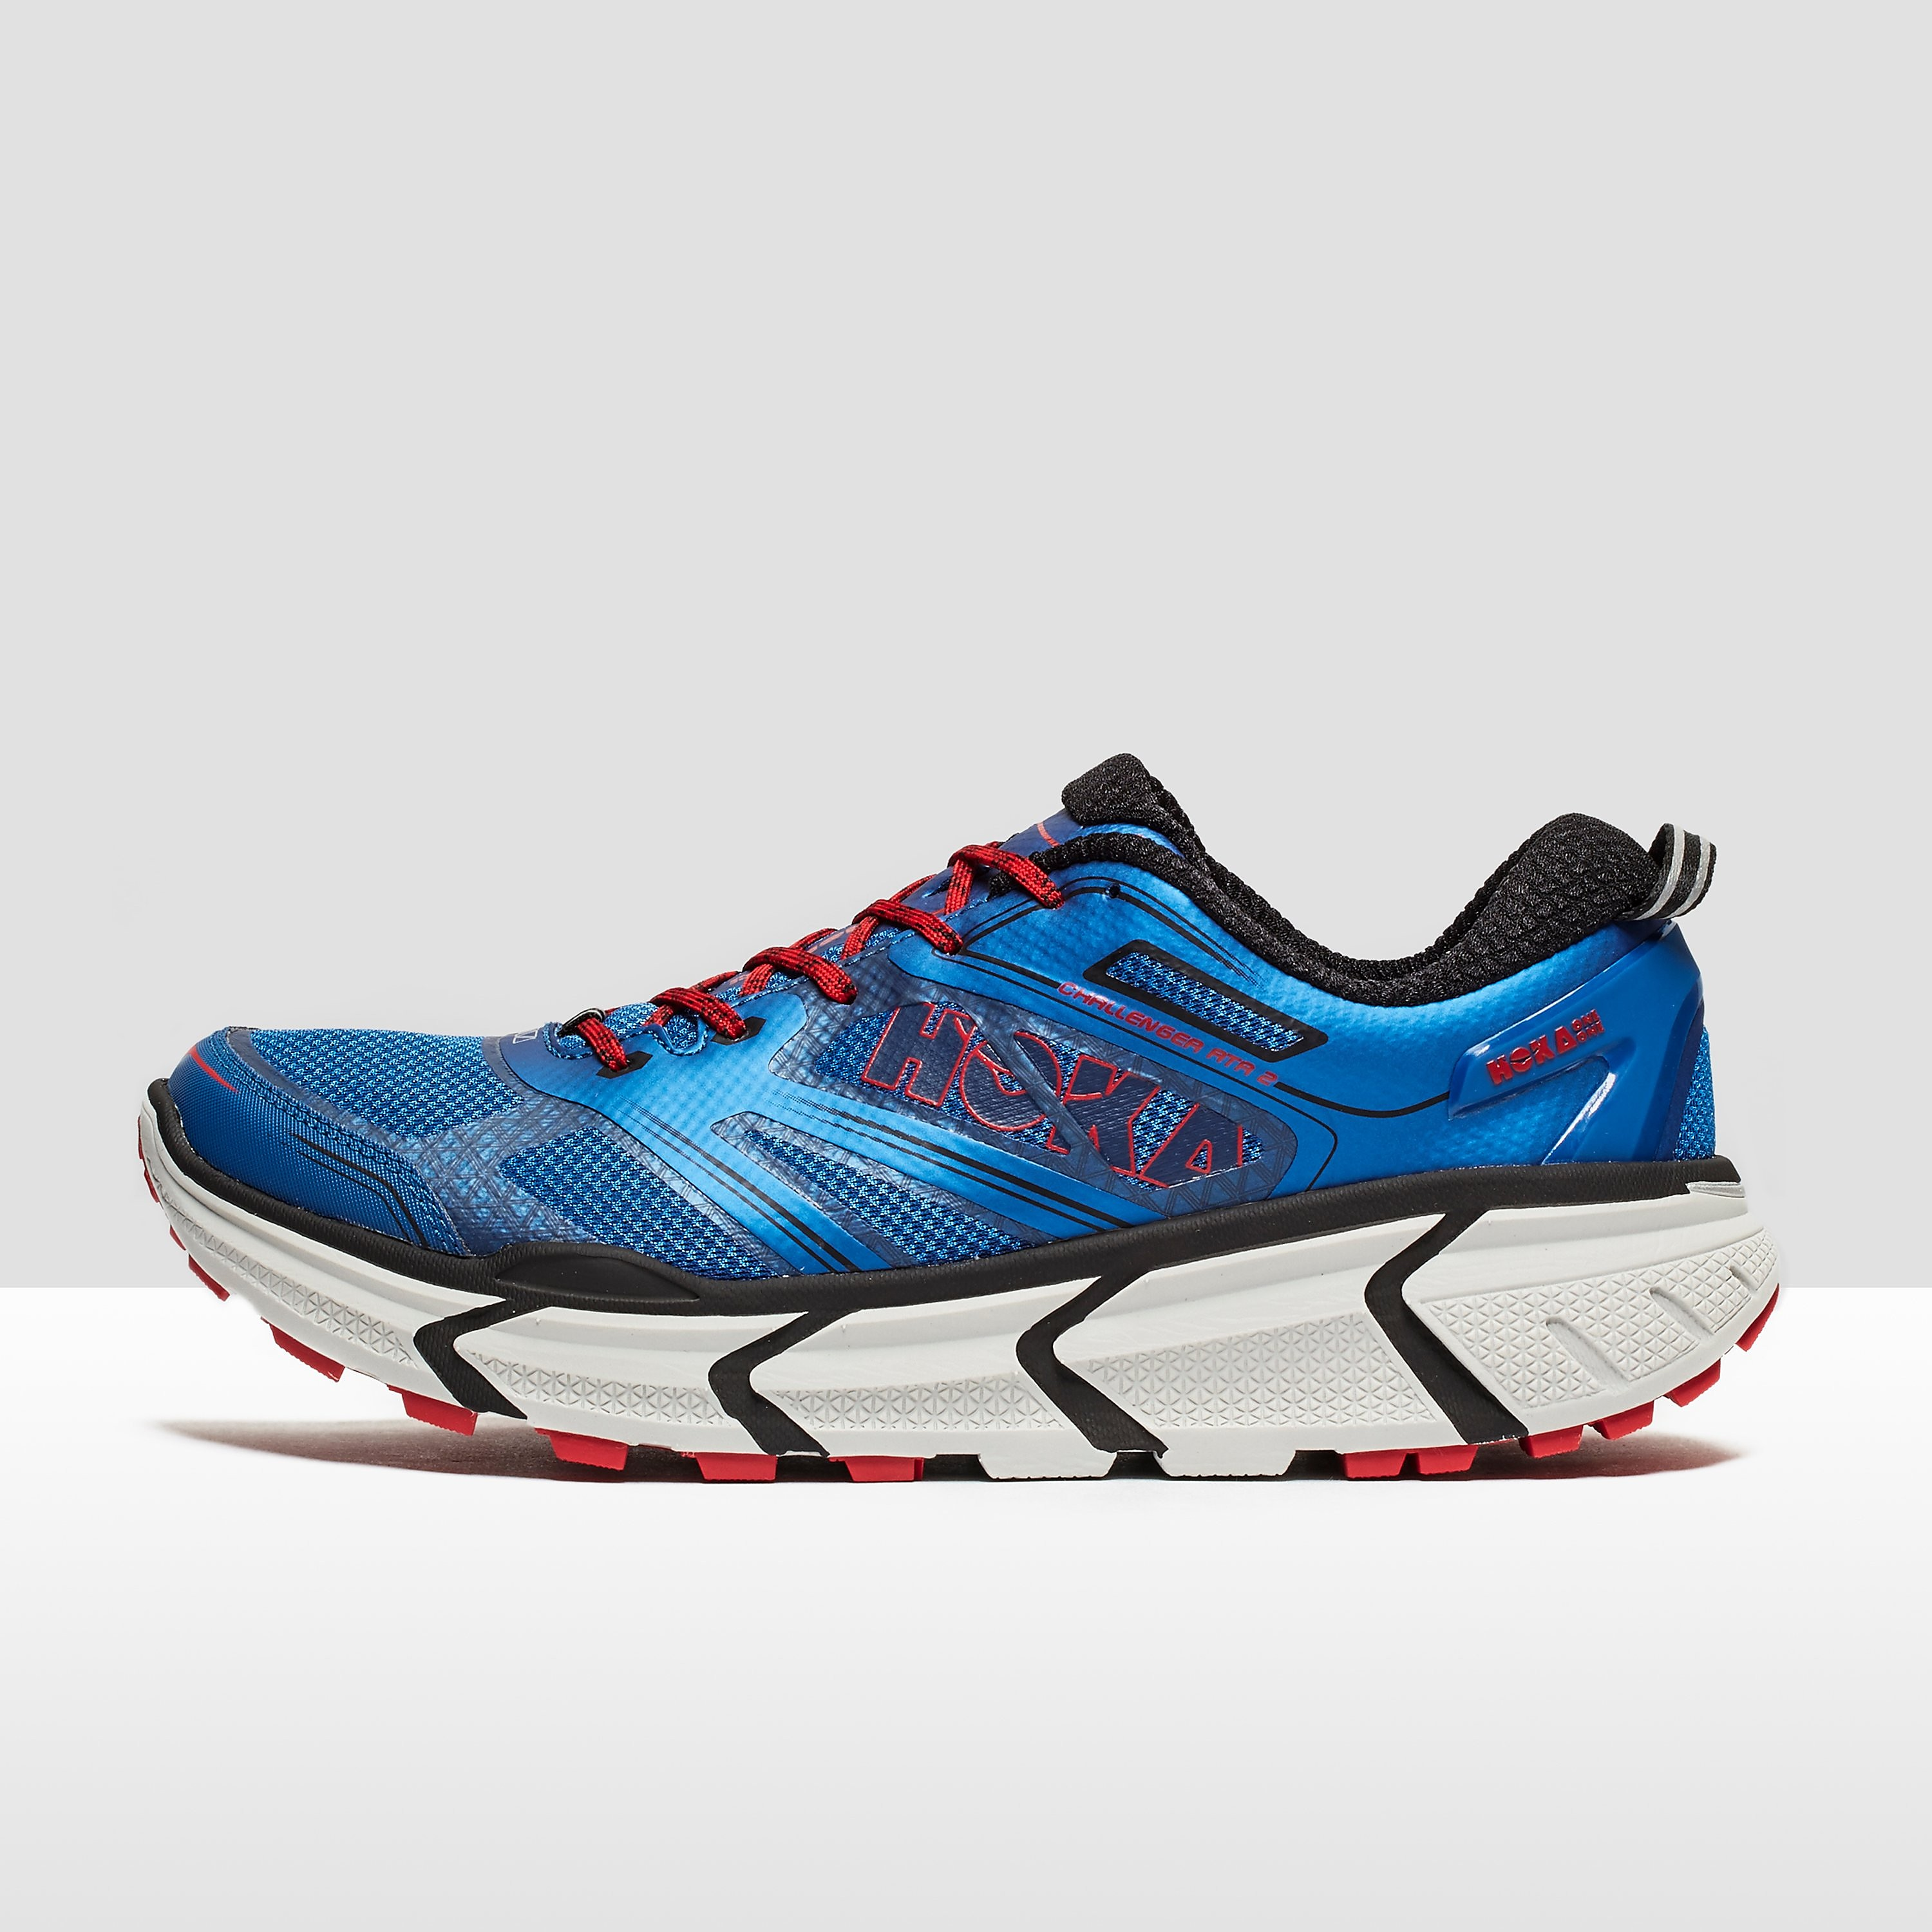 Hoka one one Challenger ATR 2 Men's Trail Running Shoes